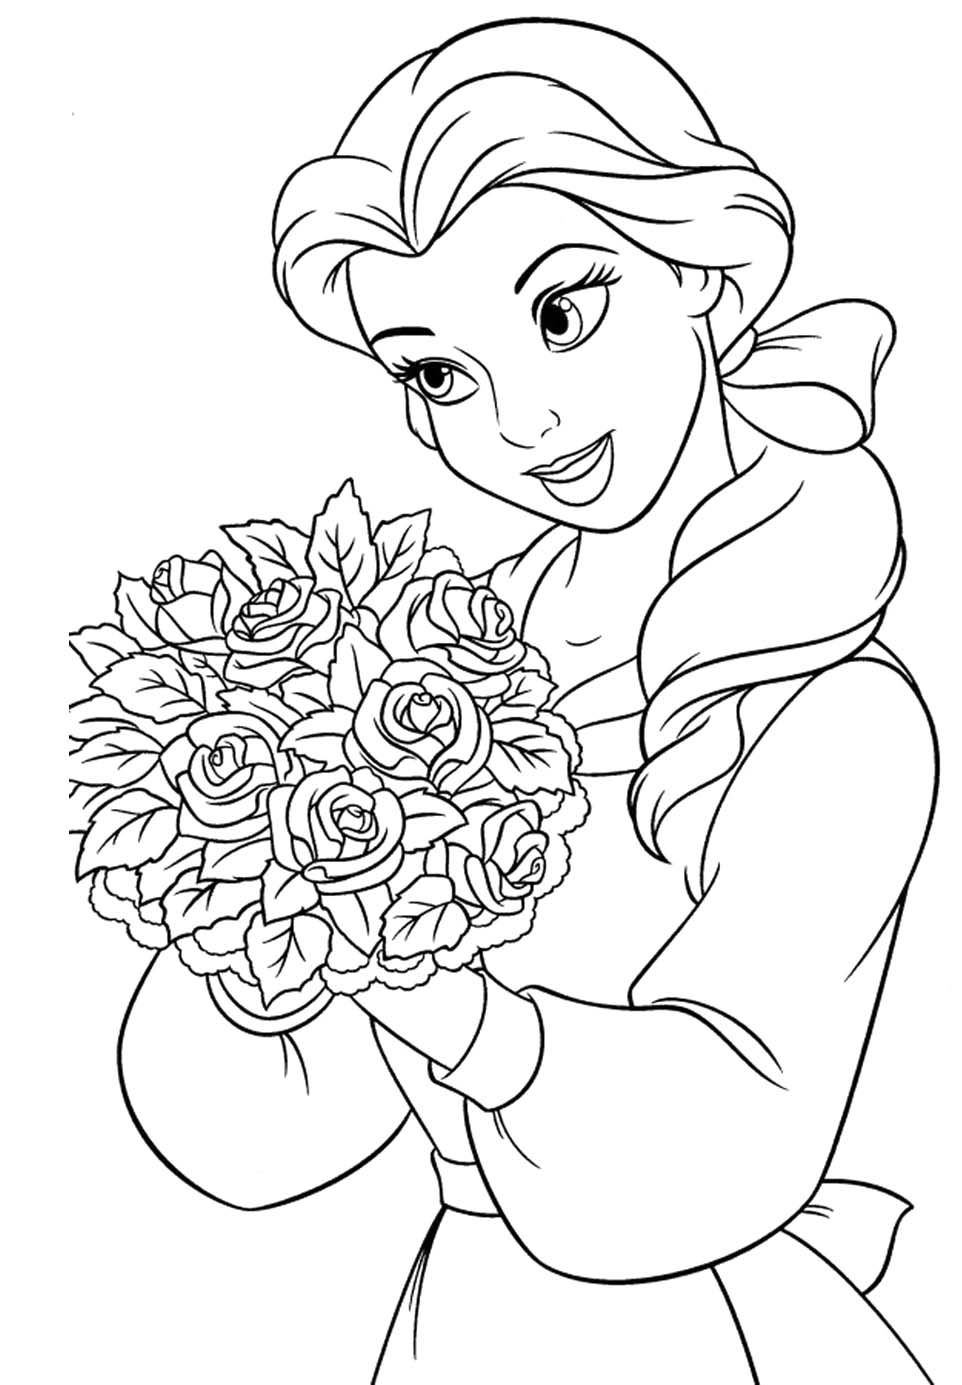 Princess Belle Carry Flowers Coloring Pages Princess